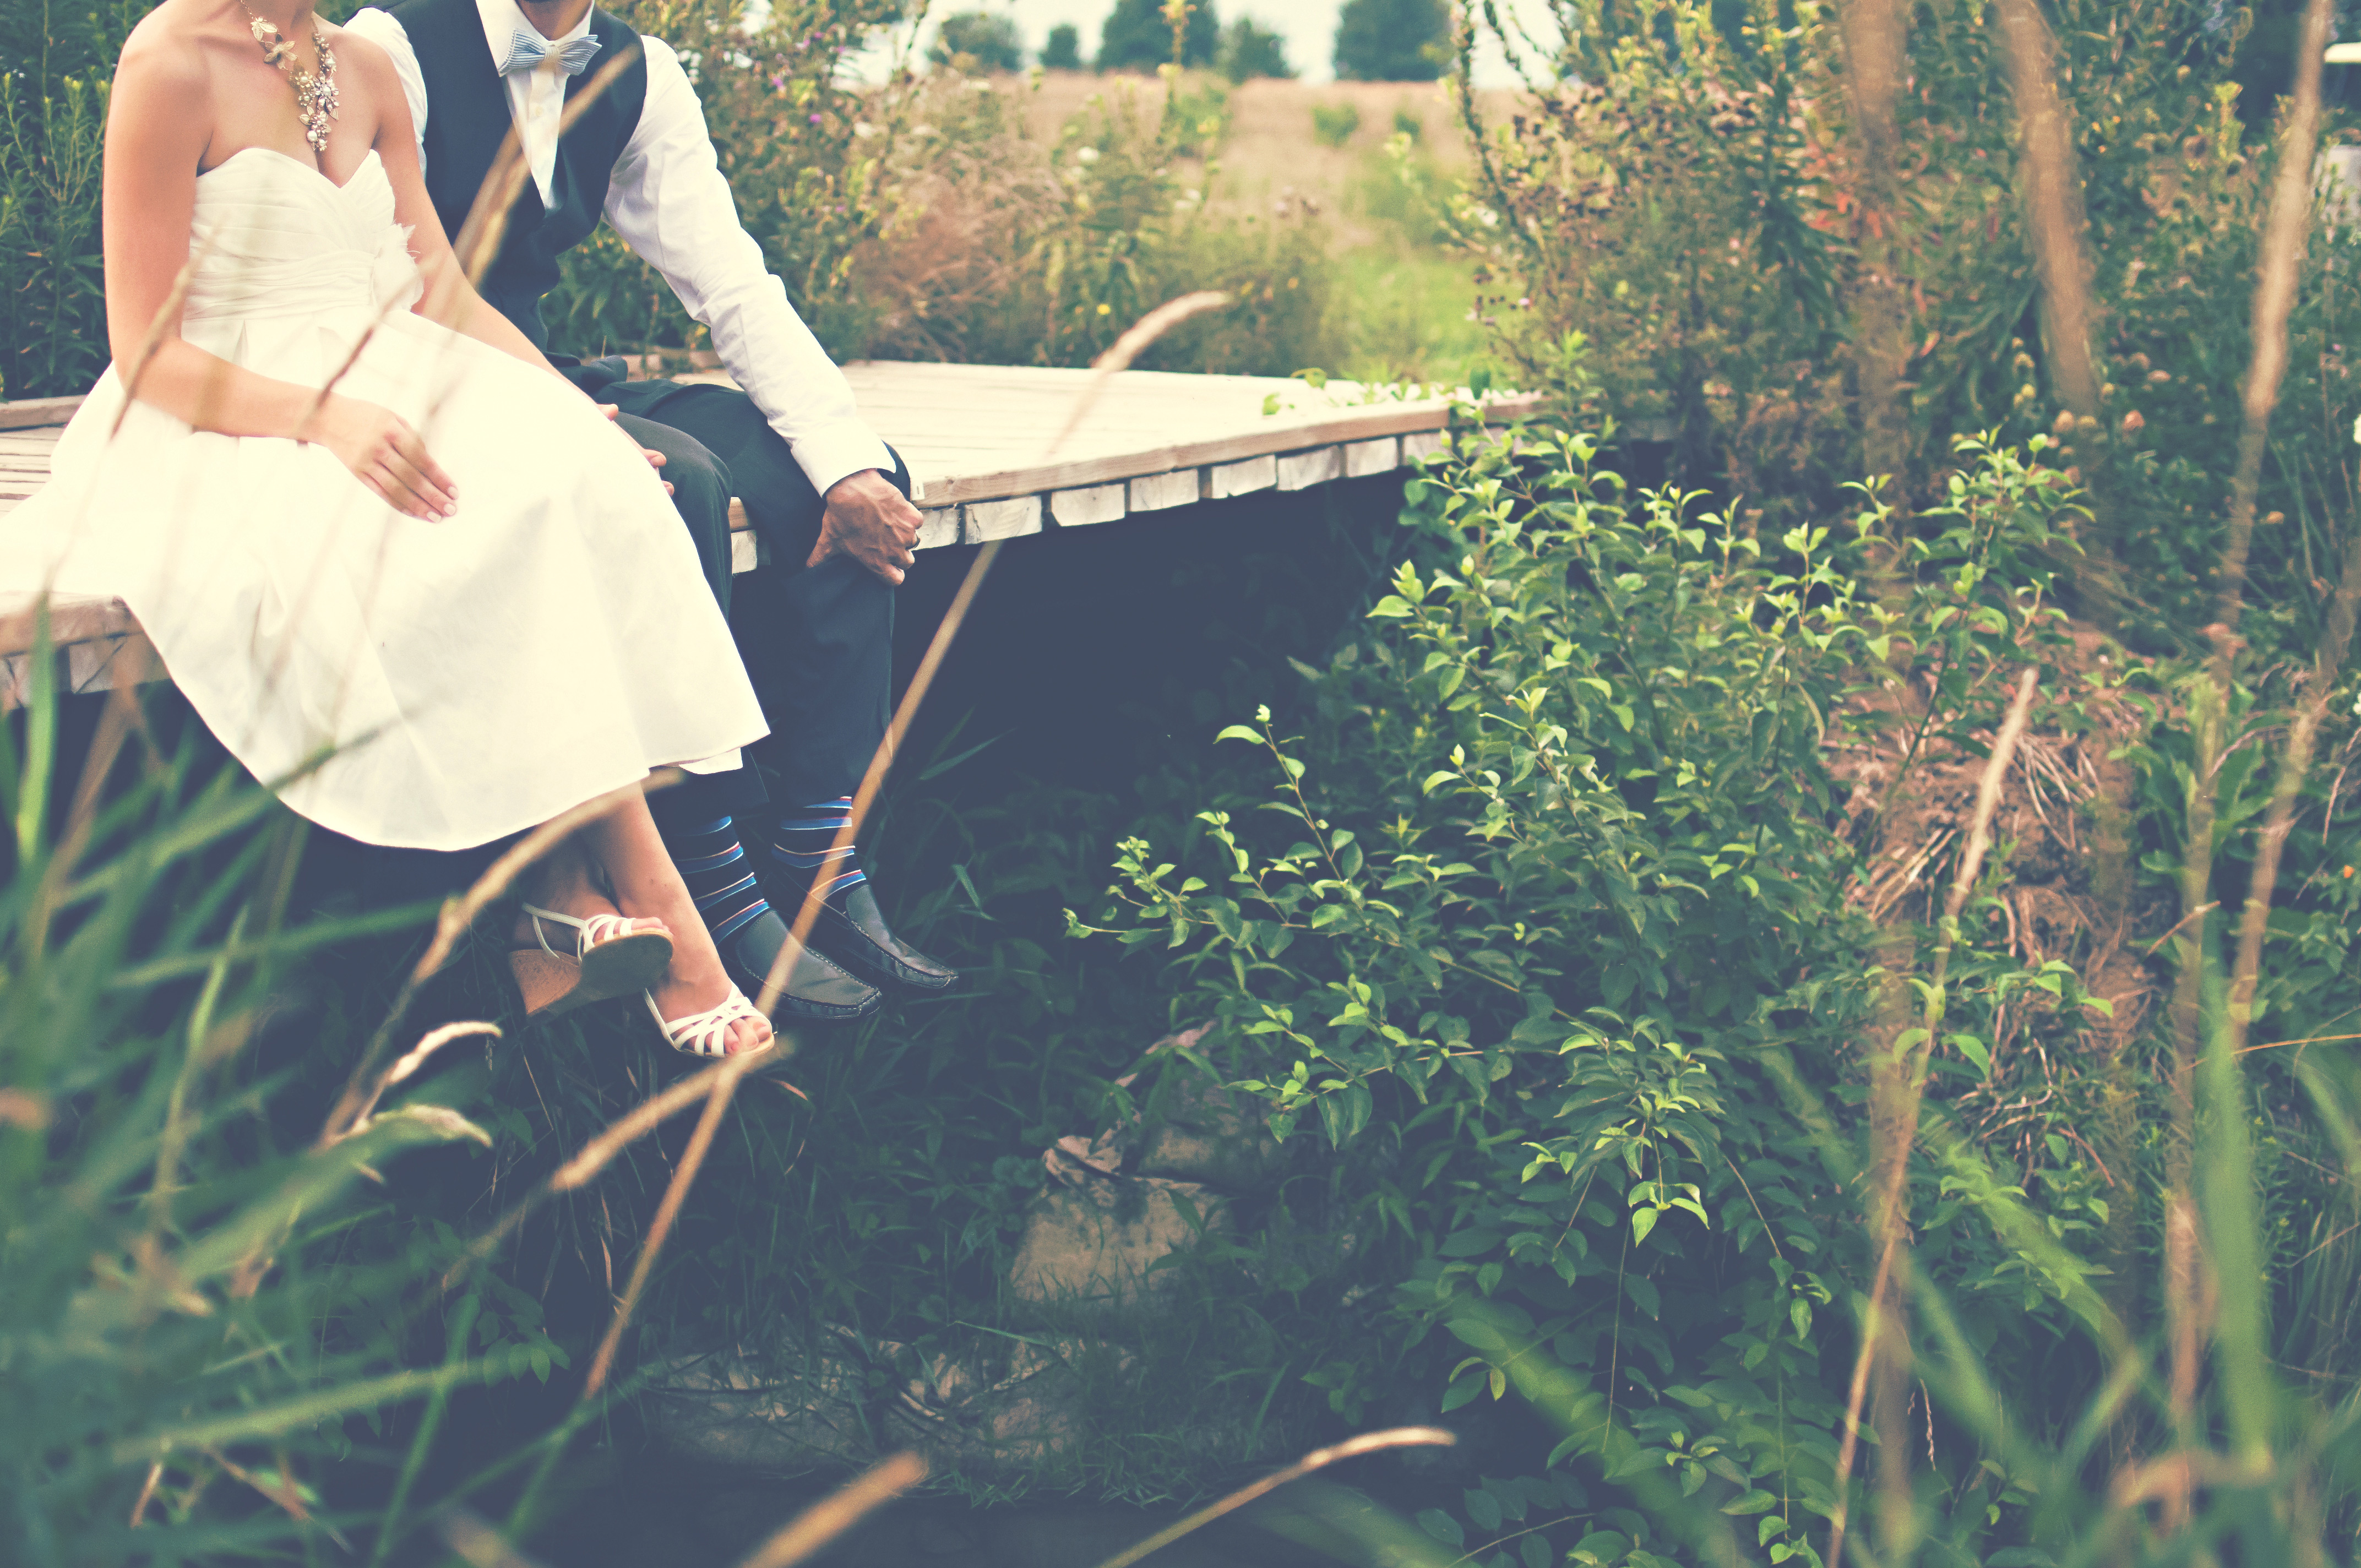 Staying on the Safe Side With Wedding Insurance